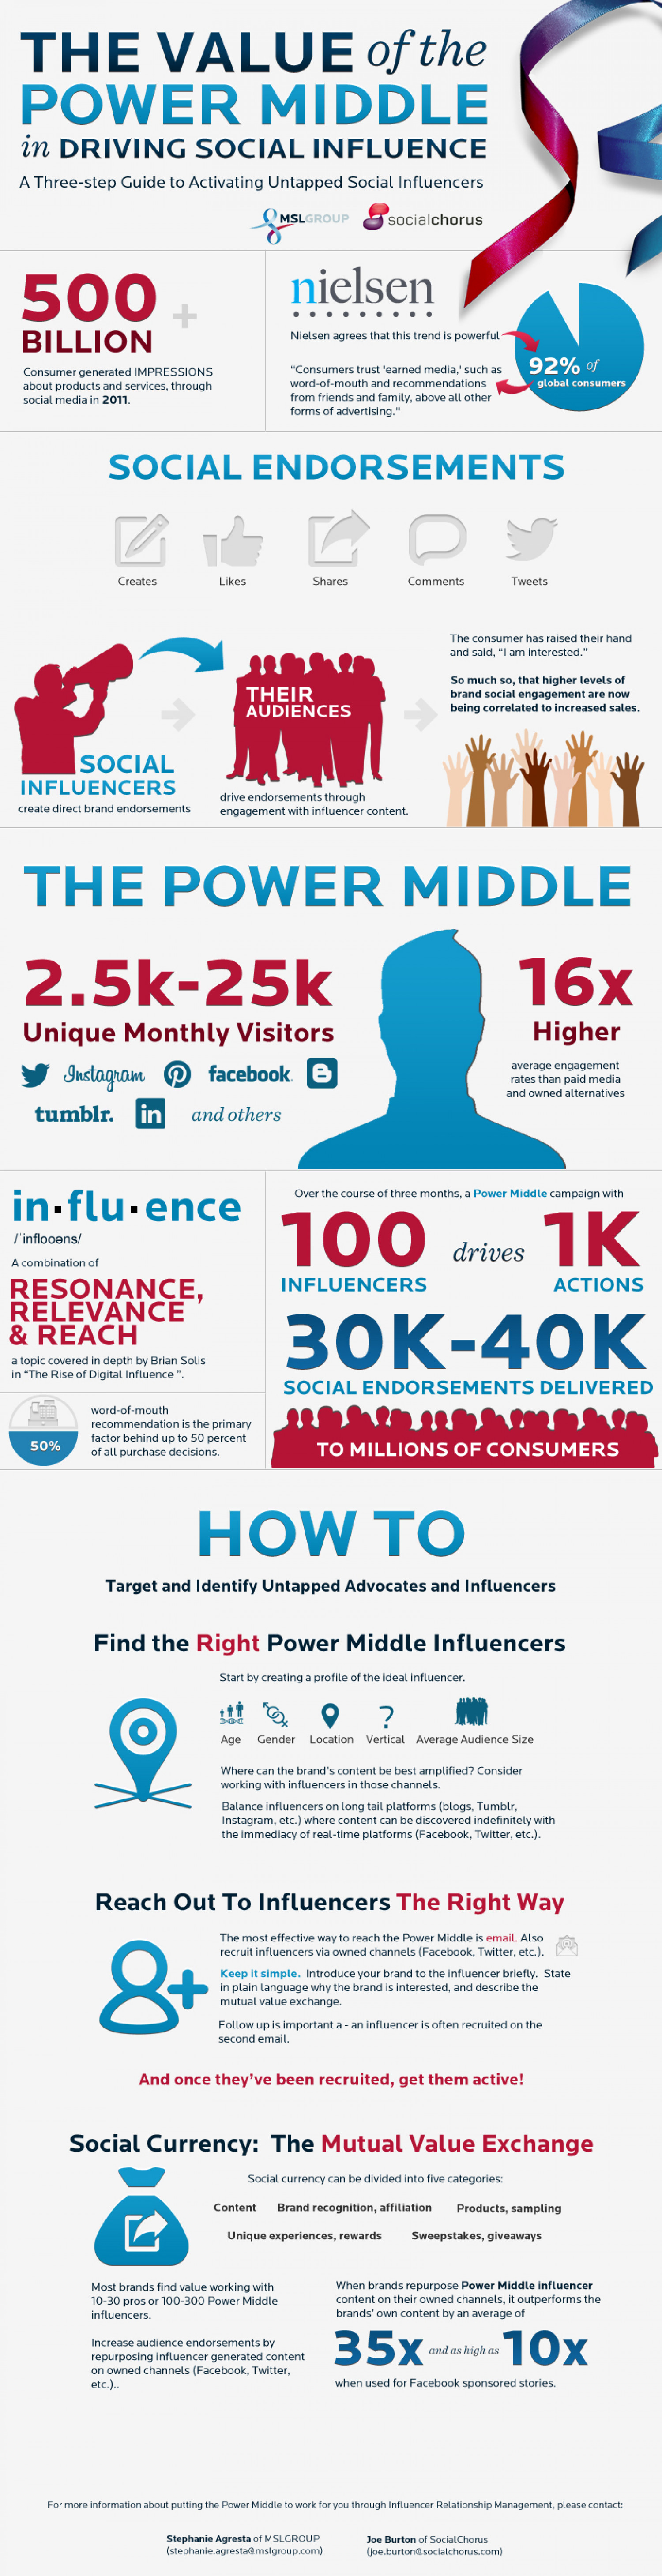 Guide to Finding The Right Social Influencers Infographic